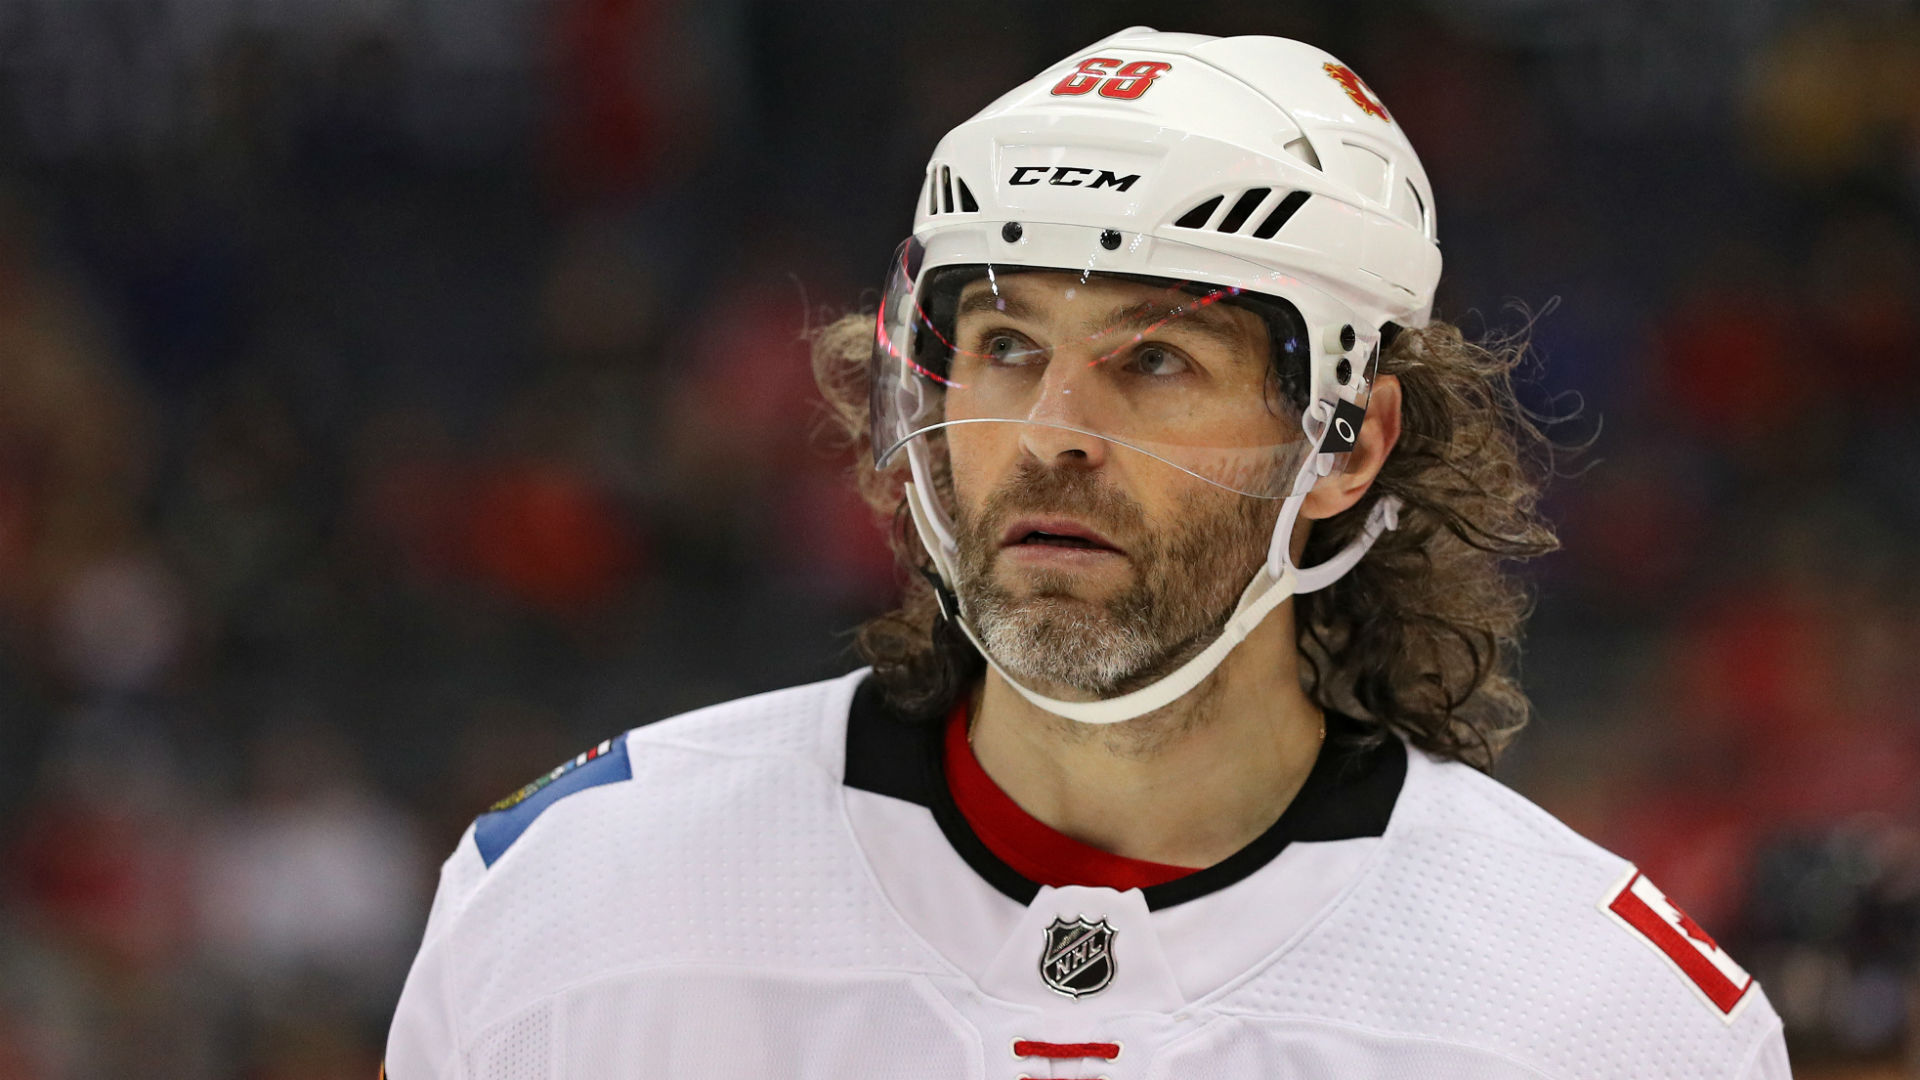 NHL All-Stars Crosby, Gaudreau salute Jagr after 45-year-old placed on waivers by Flames